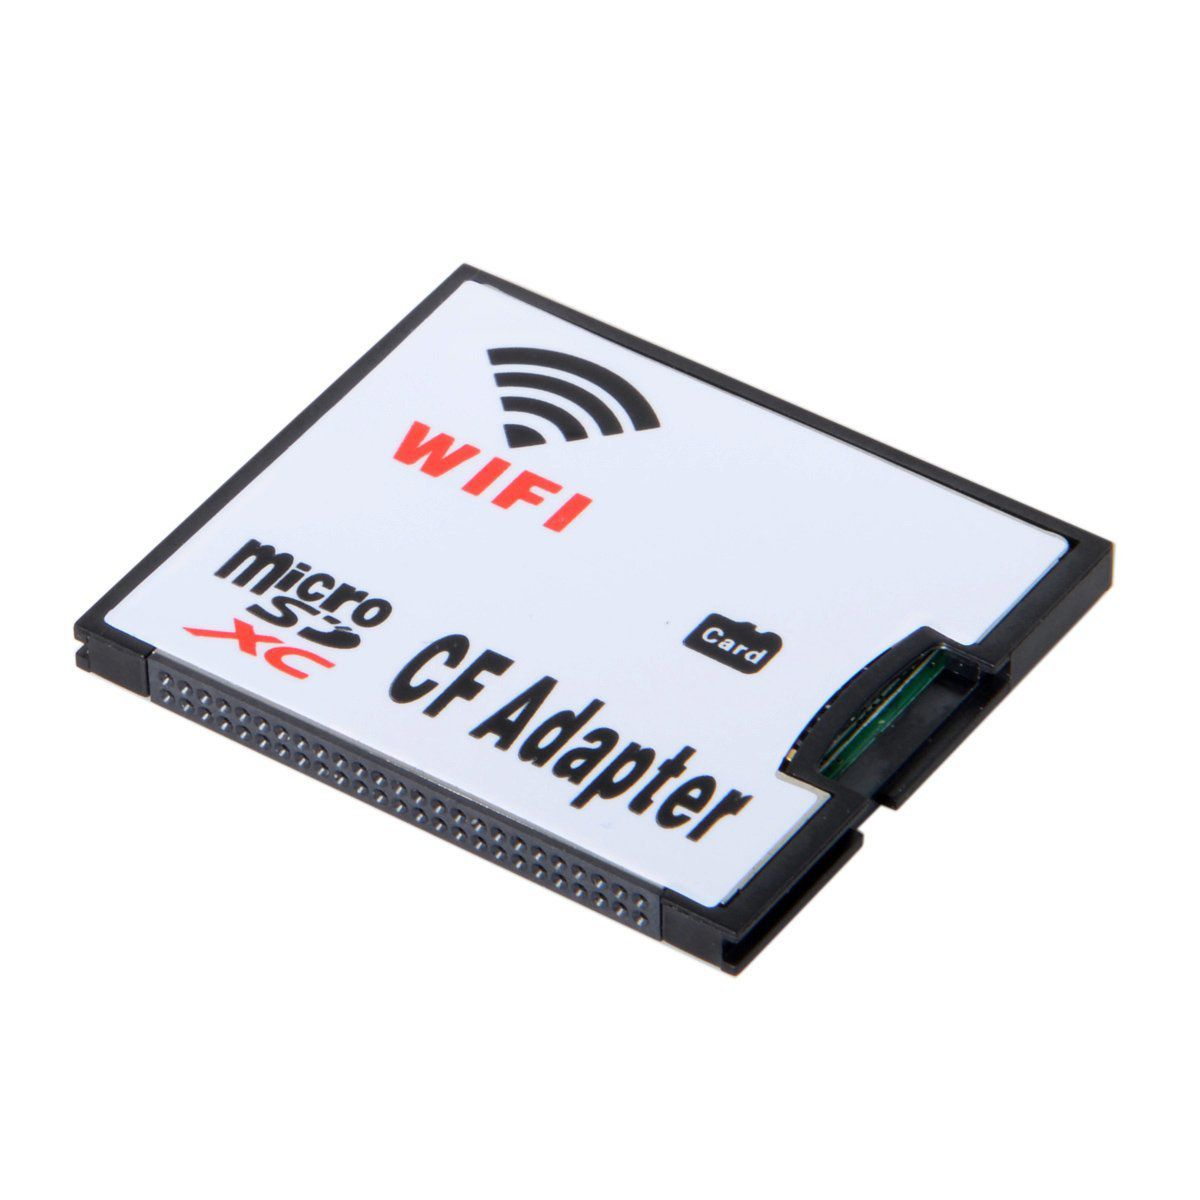 WIFI Adapter Memory Card TF Micro-SD to CF Compact Flash Card Kit for Digital Camera купить в Москве 2019